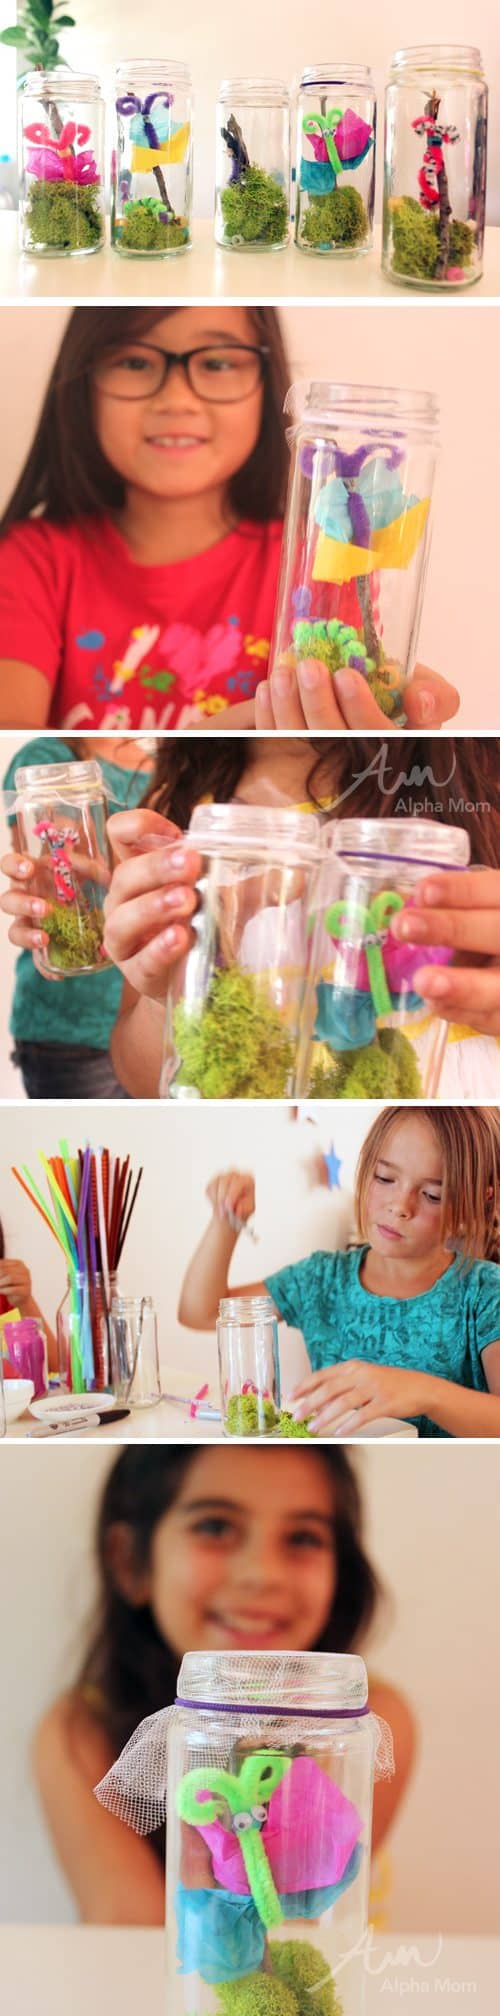 "Pretend ""Bugs in a Jar"" Craft by Brenda Ponnay for Alphamom.com (tutorial)"